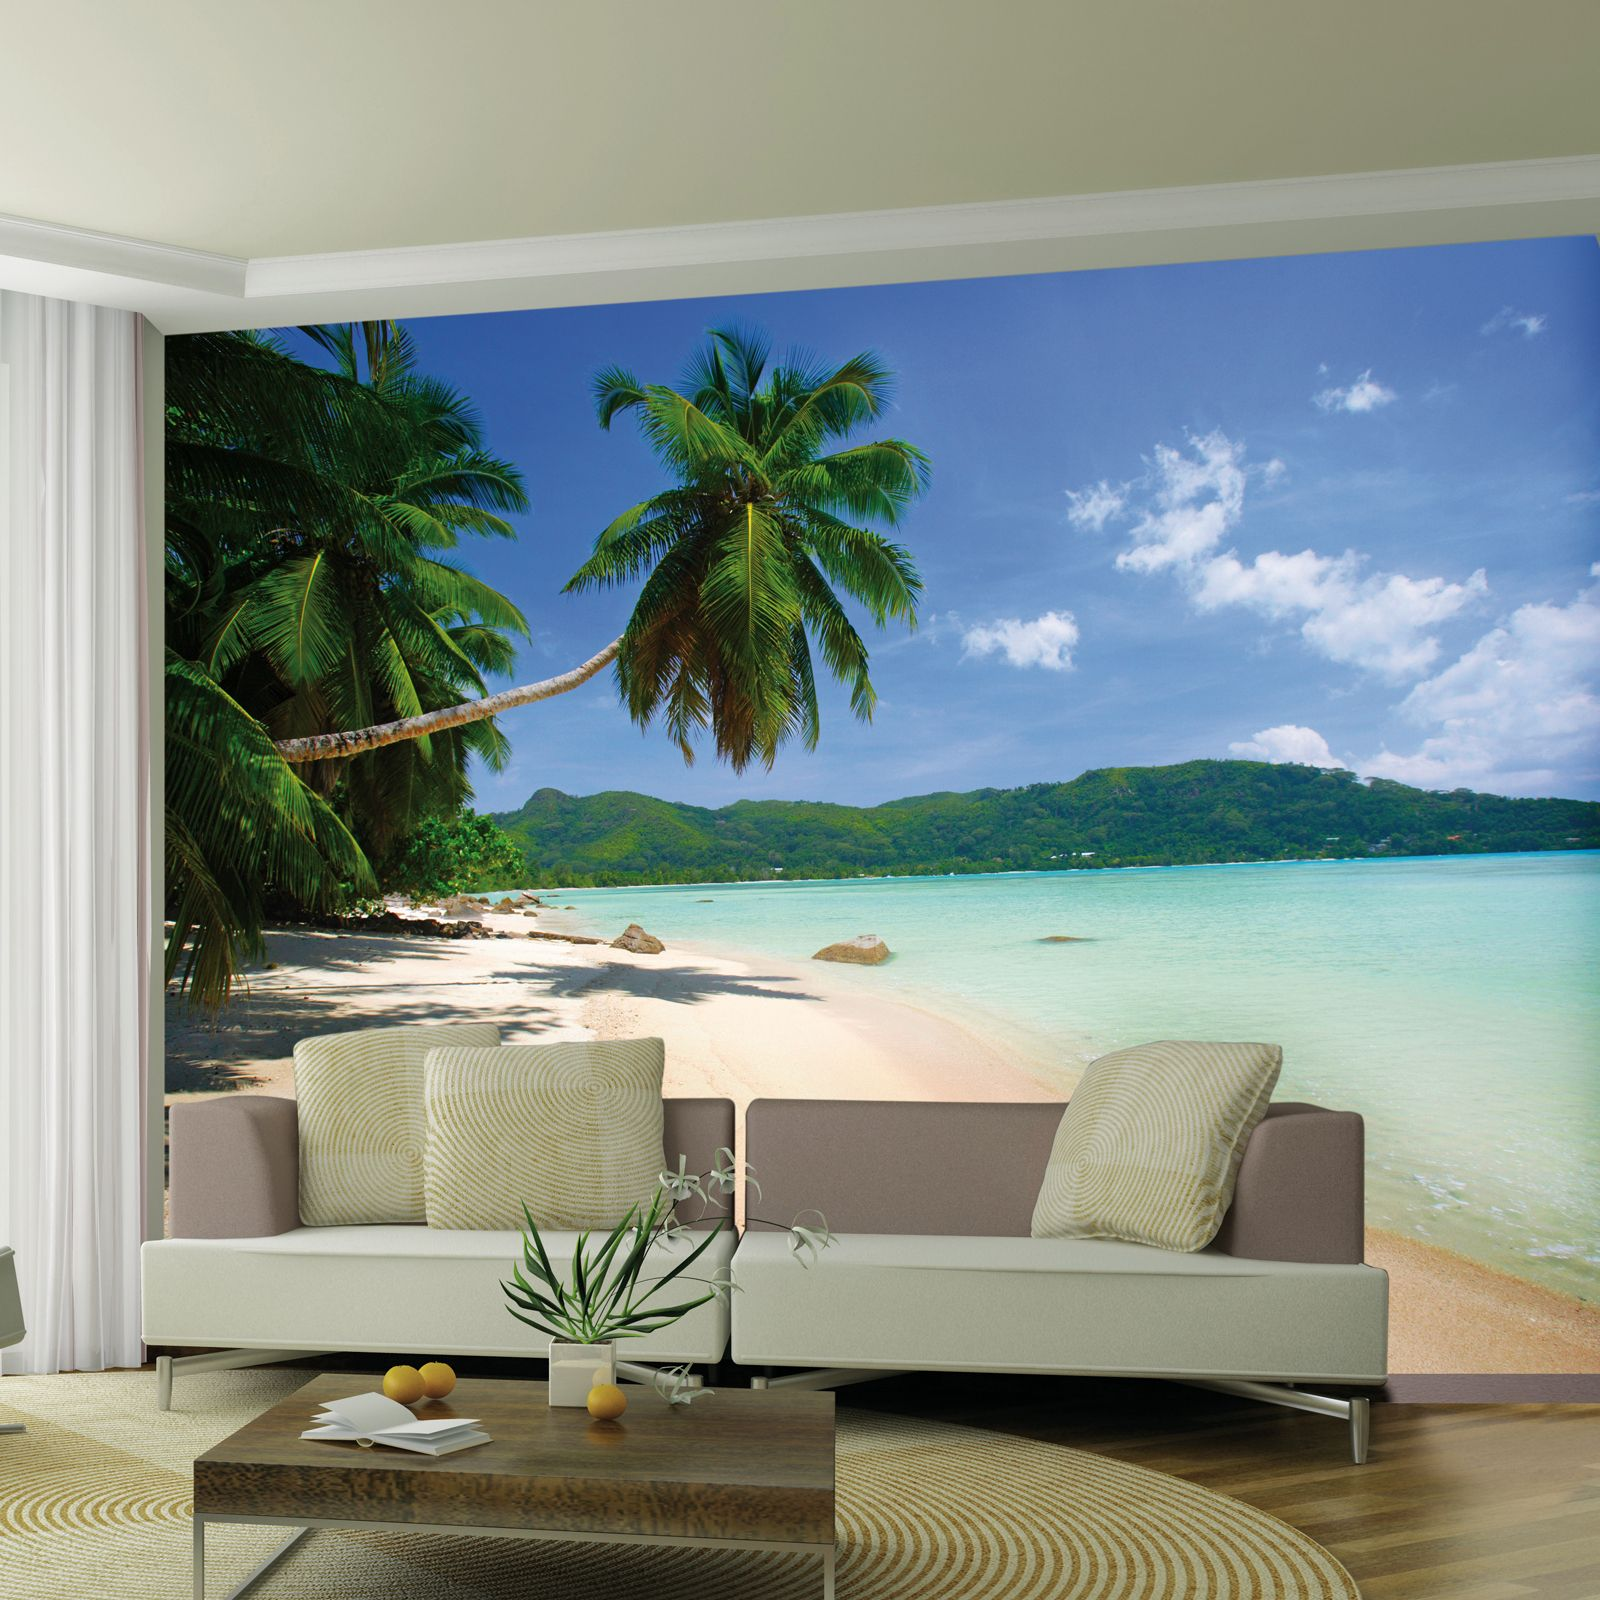 Desert island beach wallpaper wall mural 2 32m x 3 15m for Desert wall mural